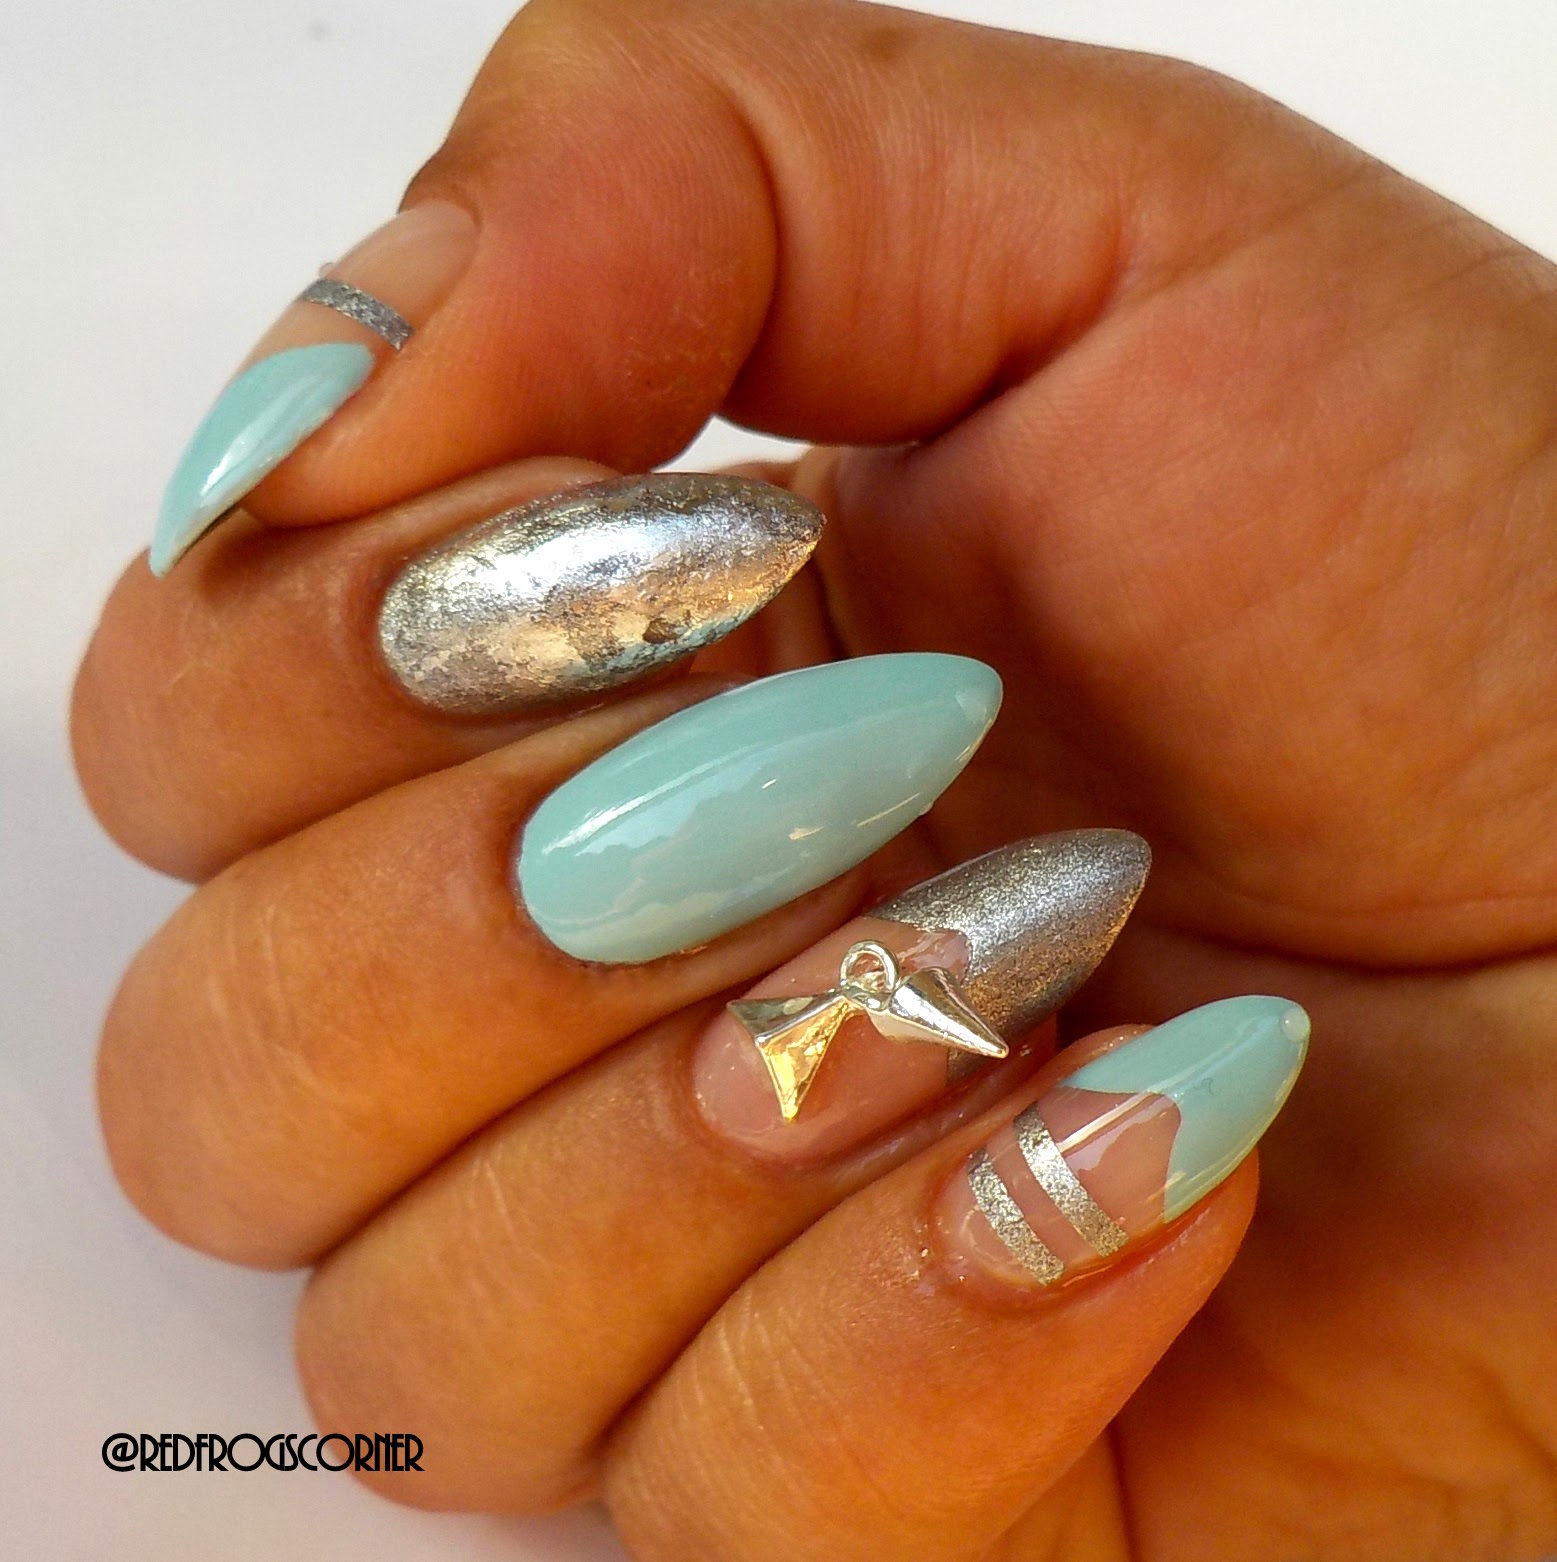 Red Polish Or Bad Polish Punk Bling Nails With Born Pretty Store